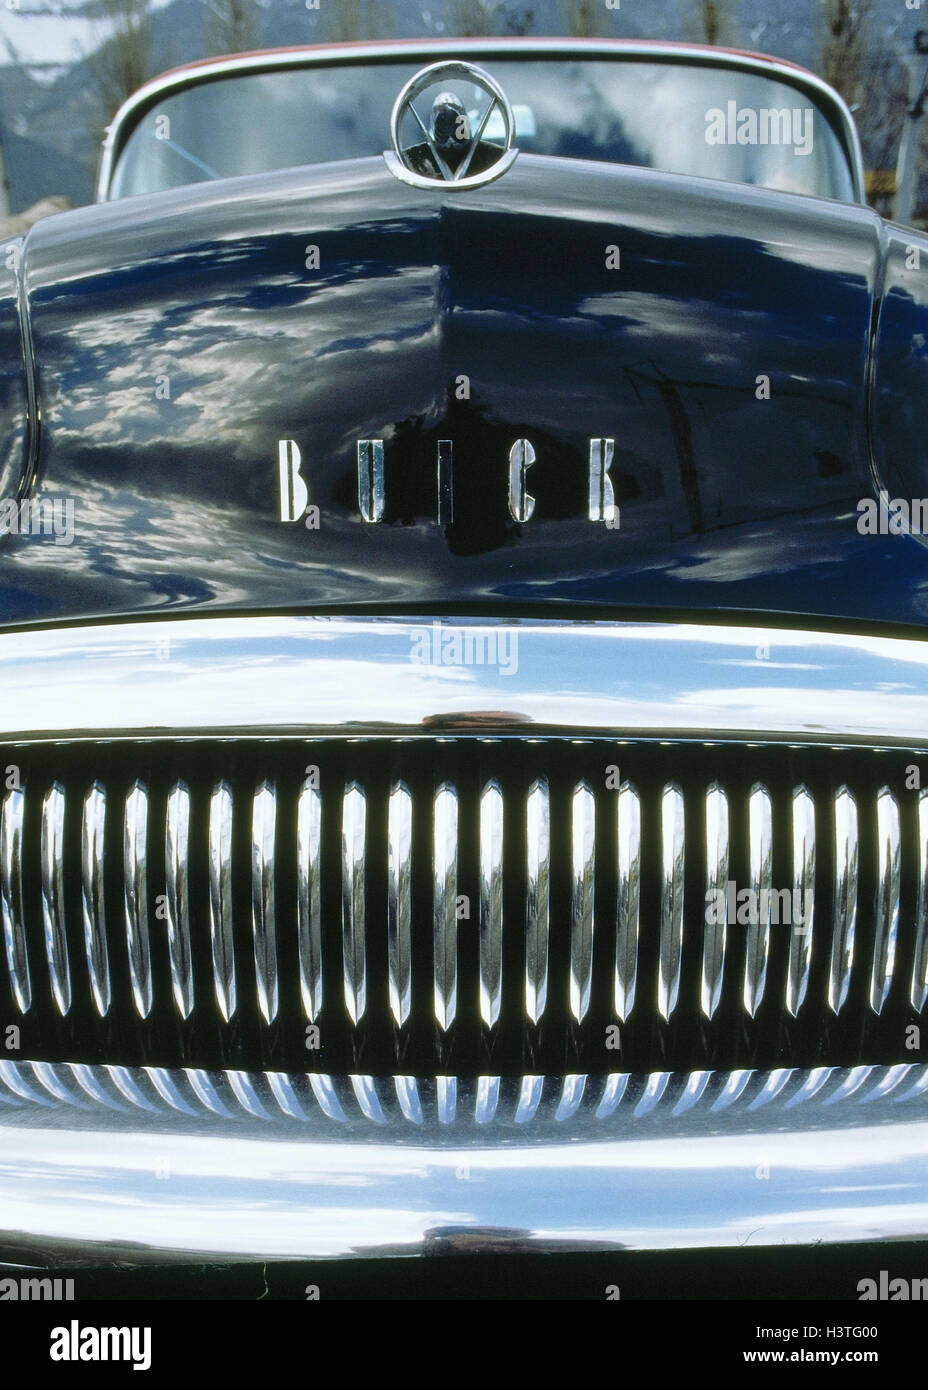 Car, old-timer, 'Buick', the 50s, front view, radiator, saloon, street cruiser, kW, vehicle, - Stock Image